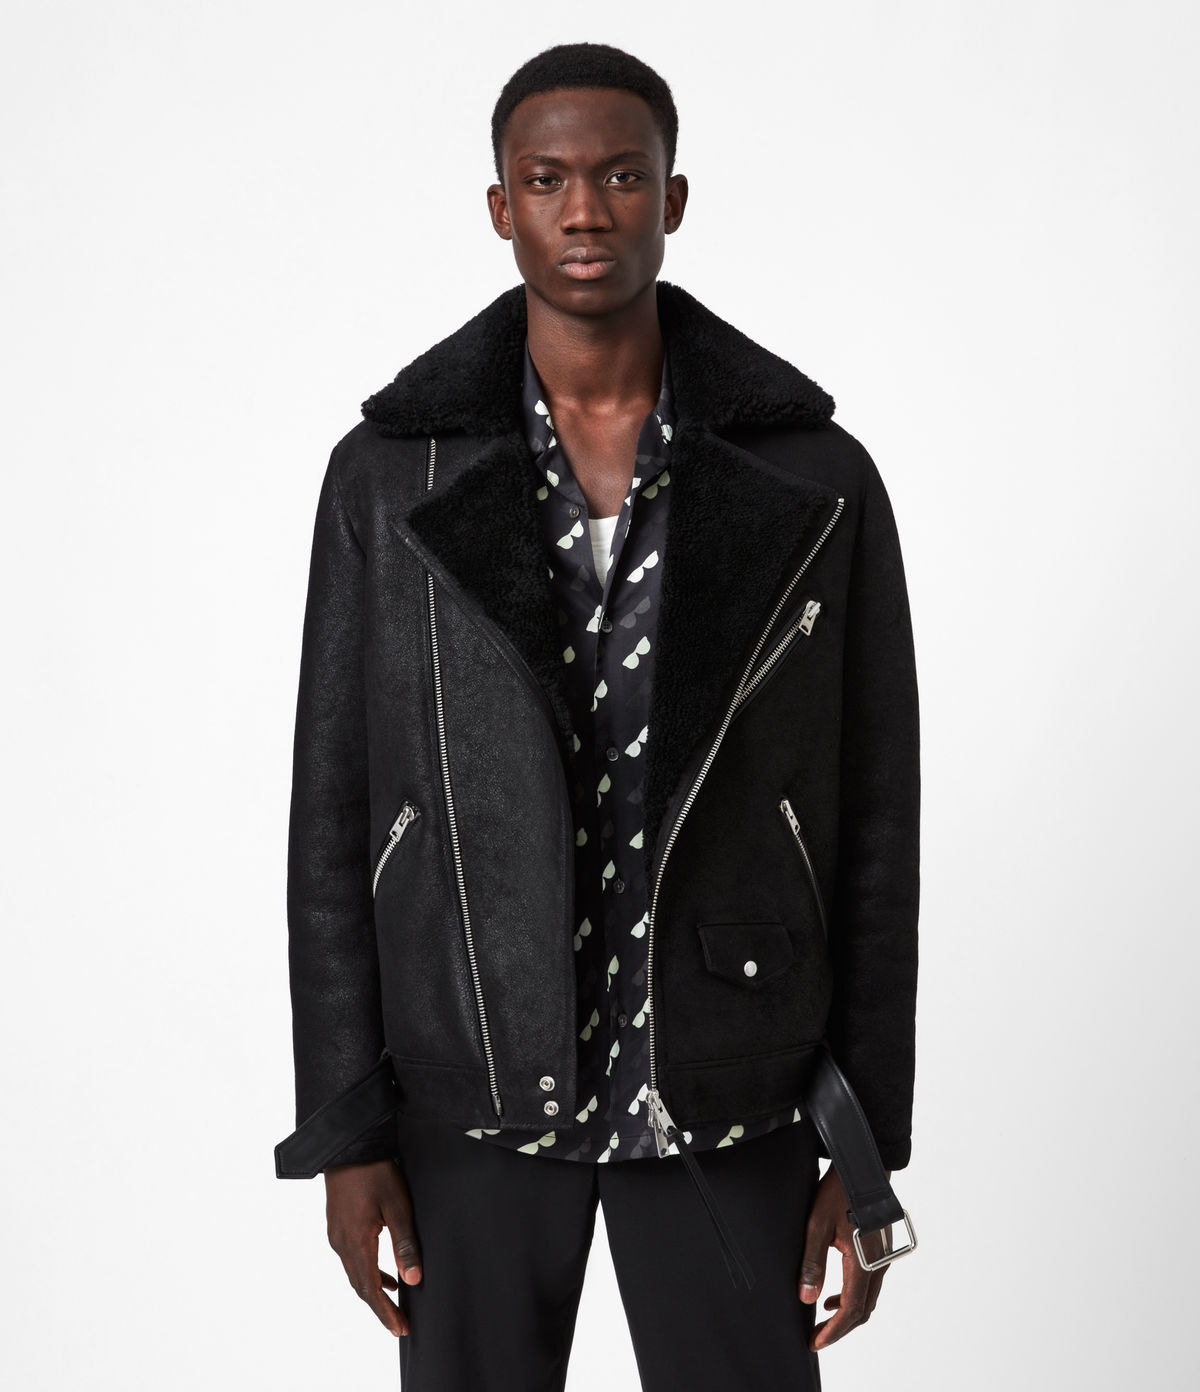 Model wearing black shearling jacket